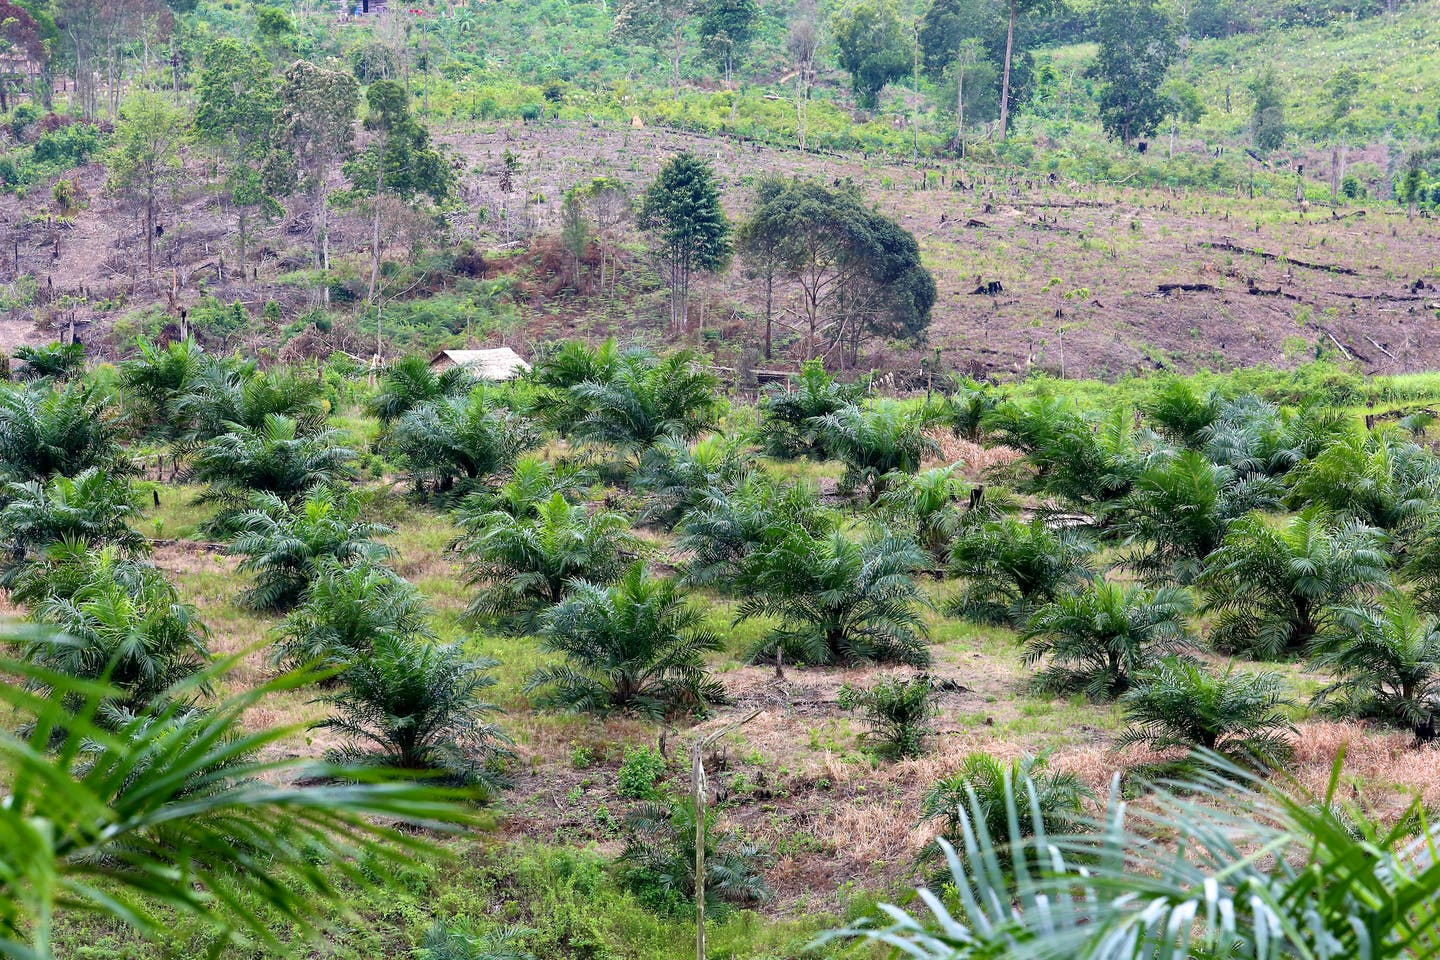 Palm oil plantation in Kalimantan, Indonesia